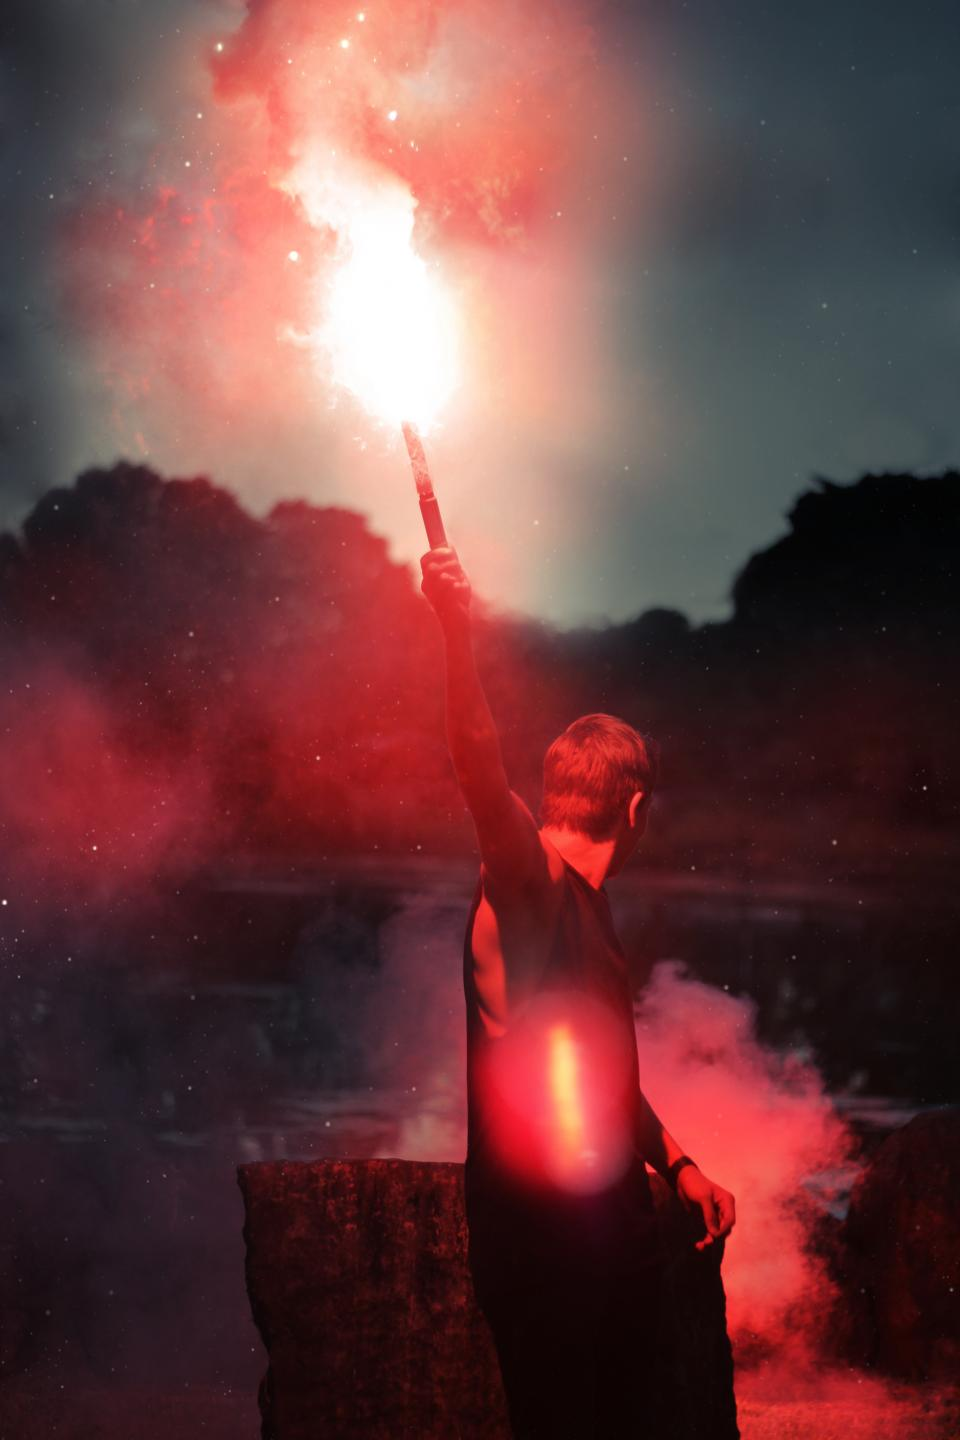 flare, light, smoke, guy, man, people, night, evening